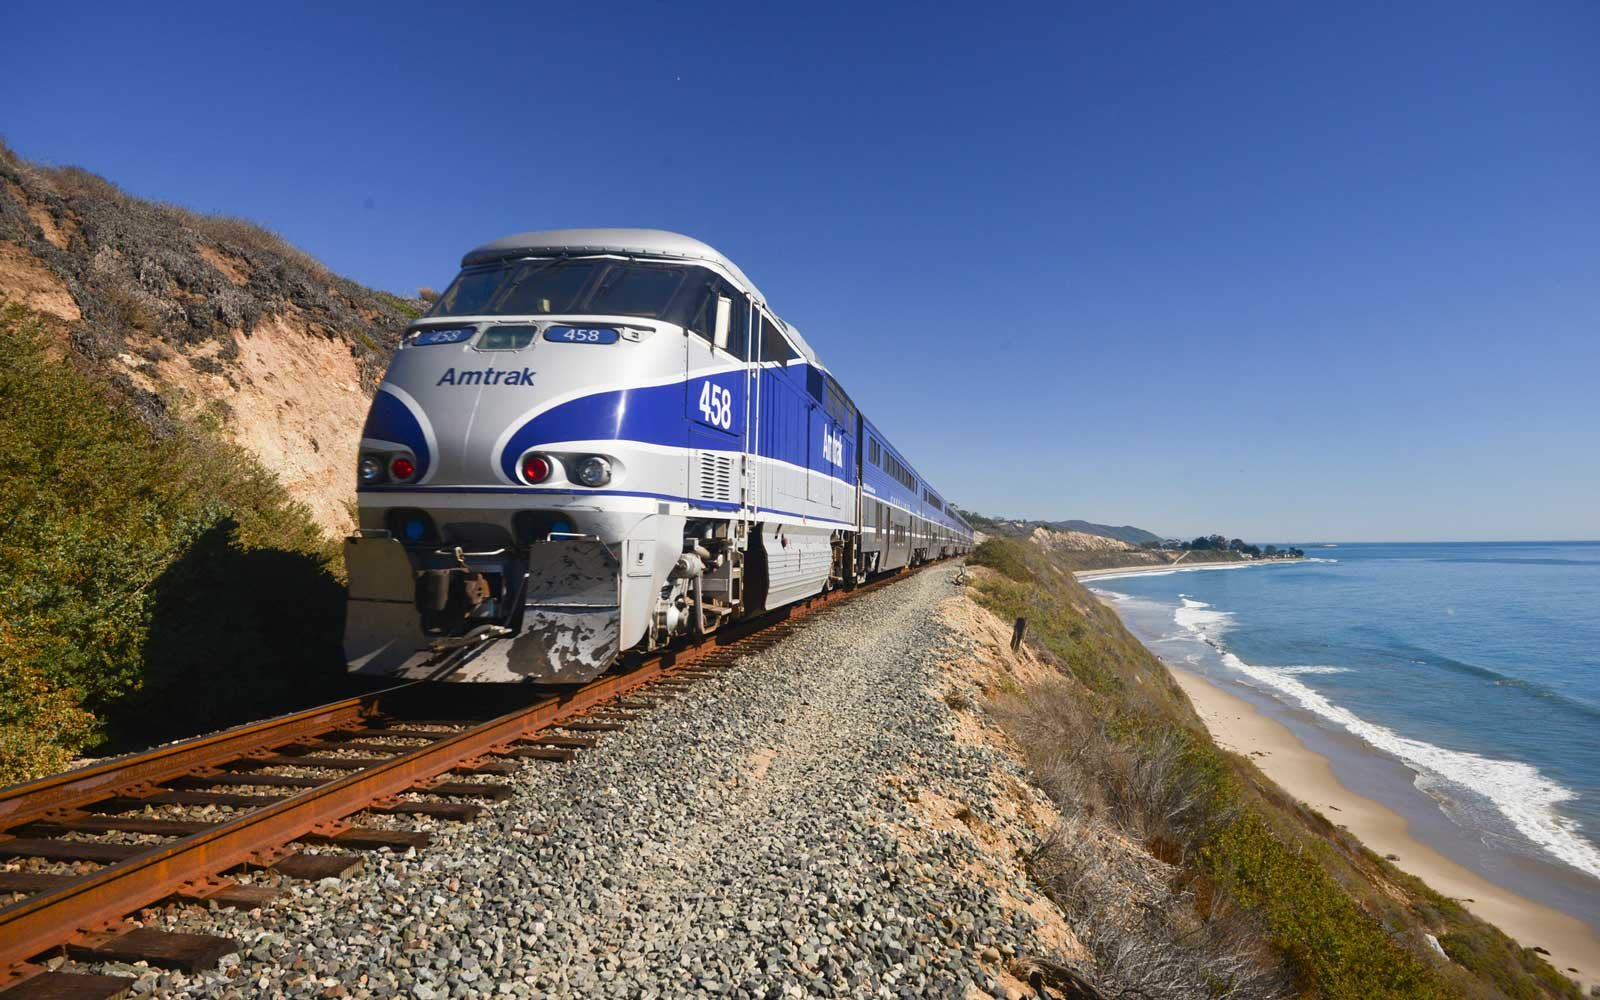 Amtrak, pacific coast